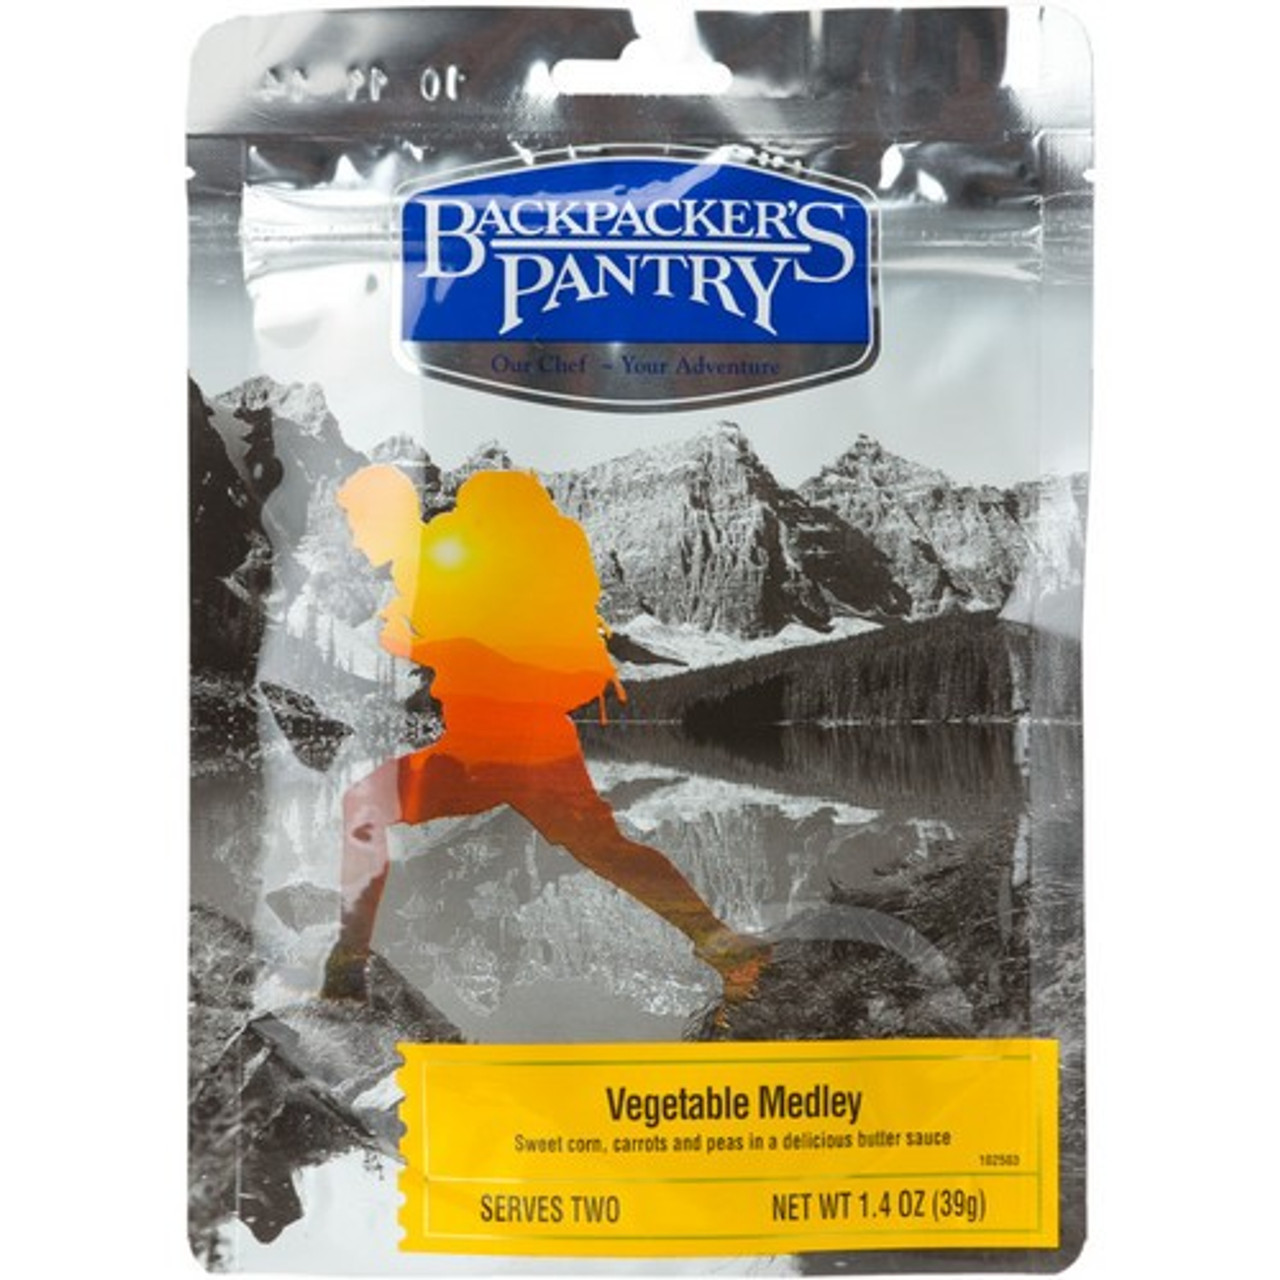 Backpacker's Pantry Vegetable Medley Pouch